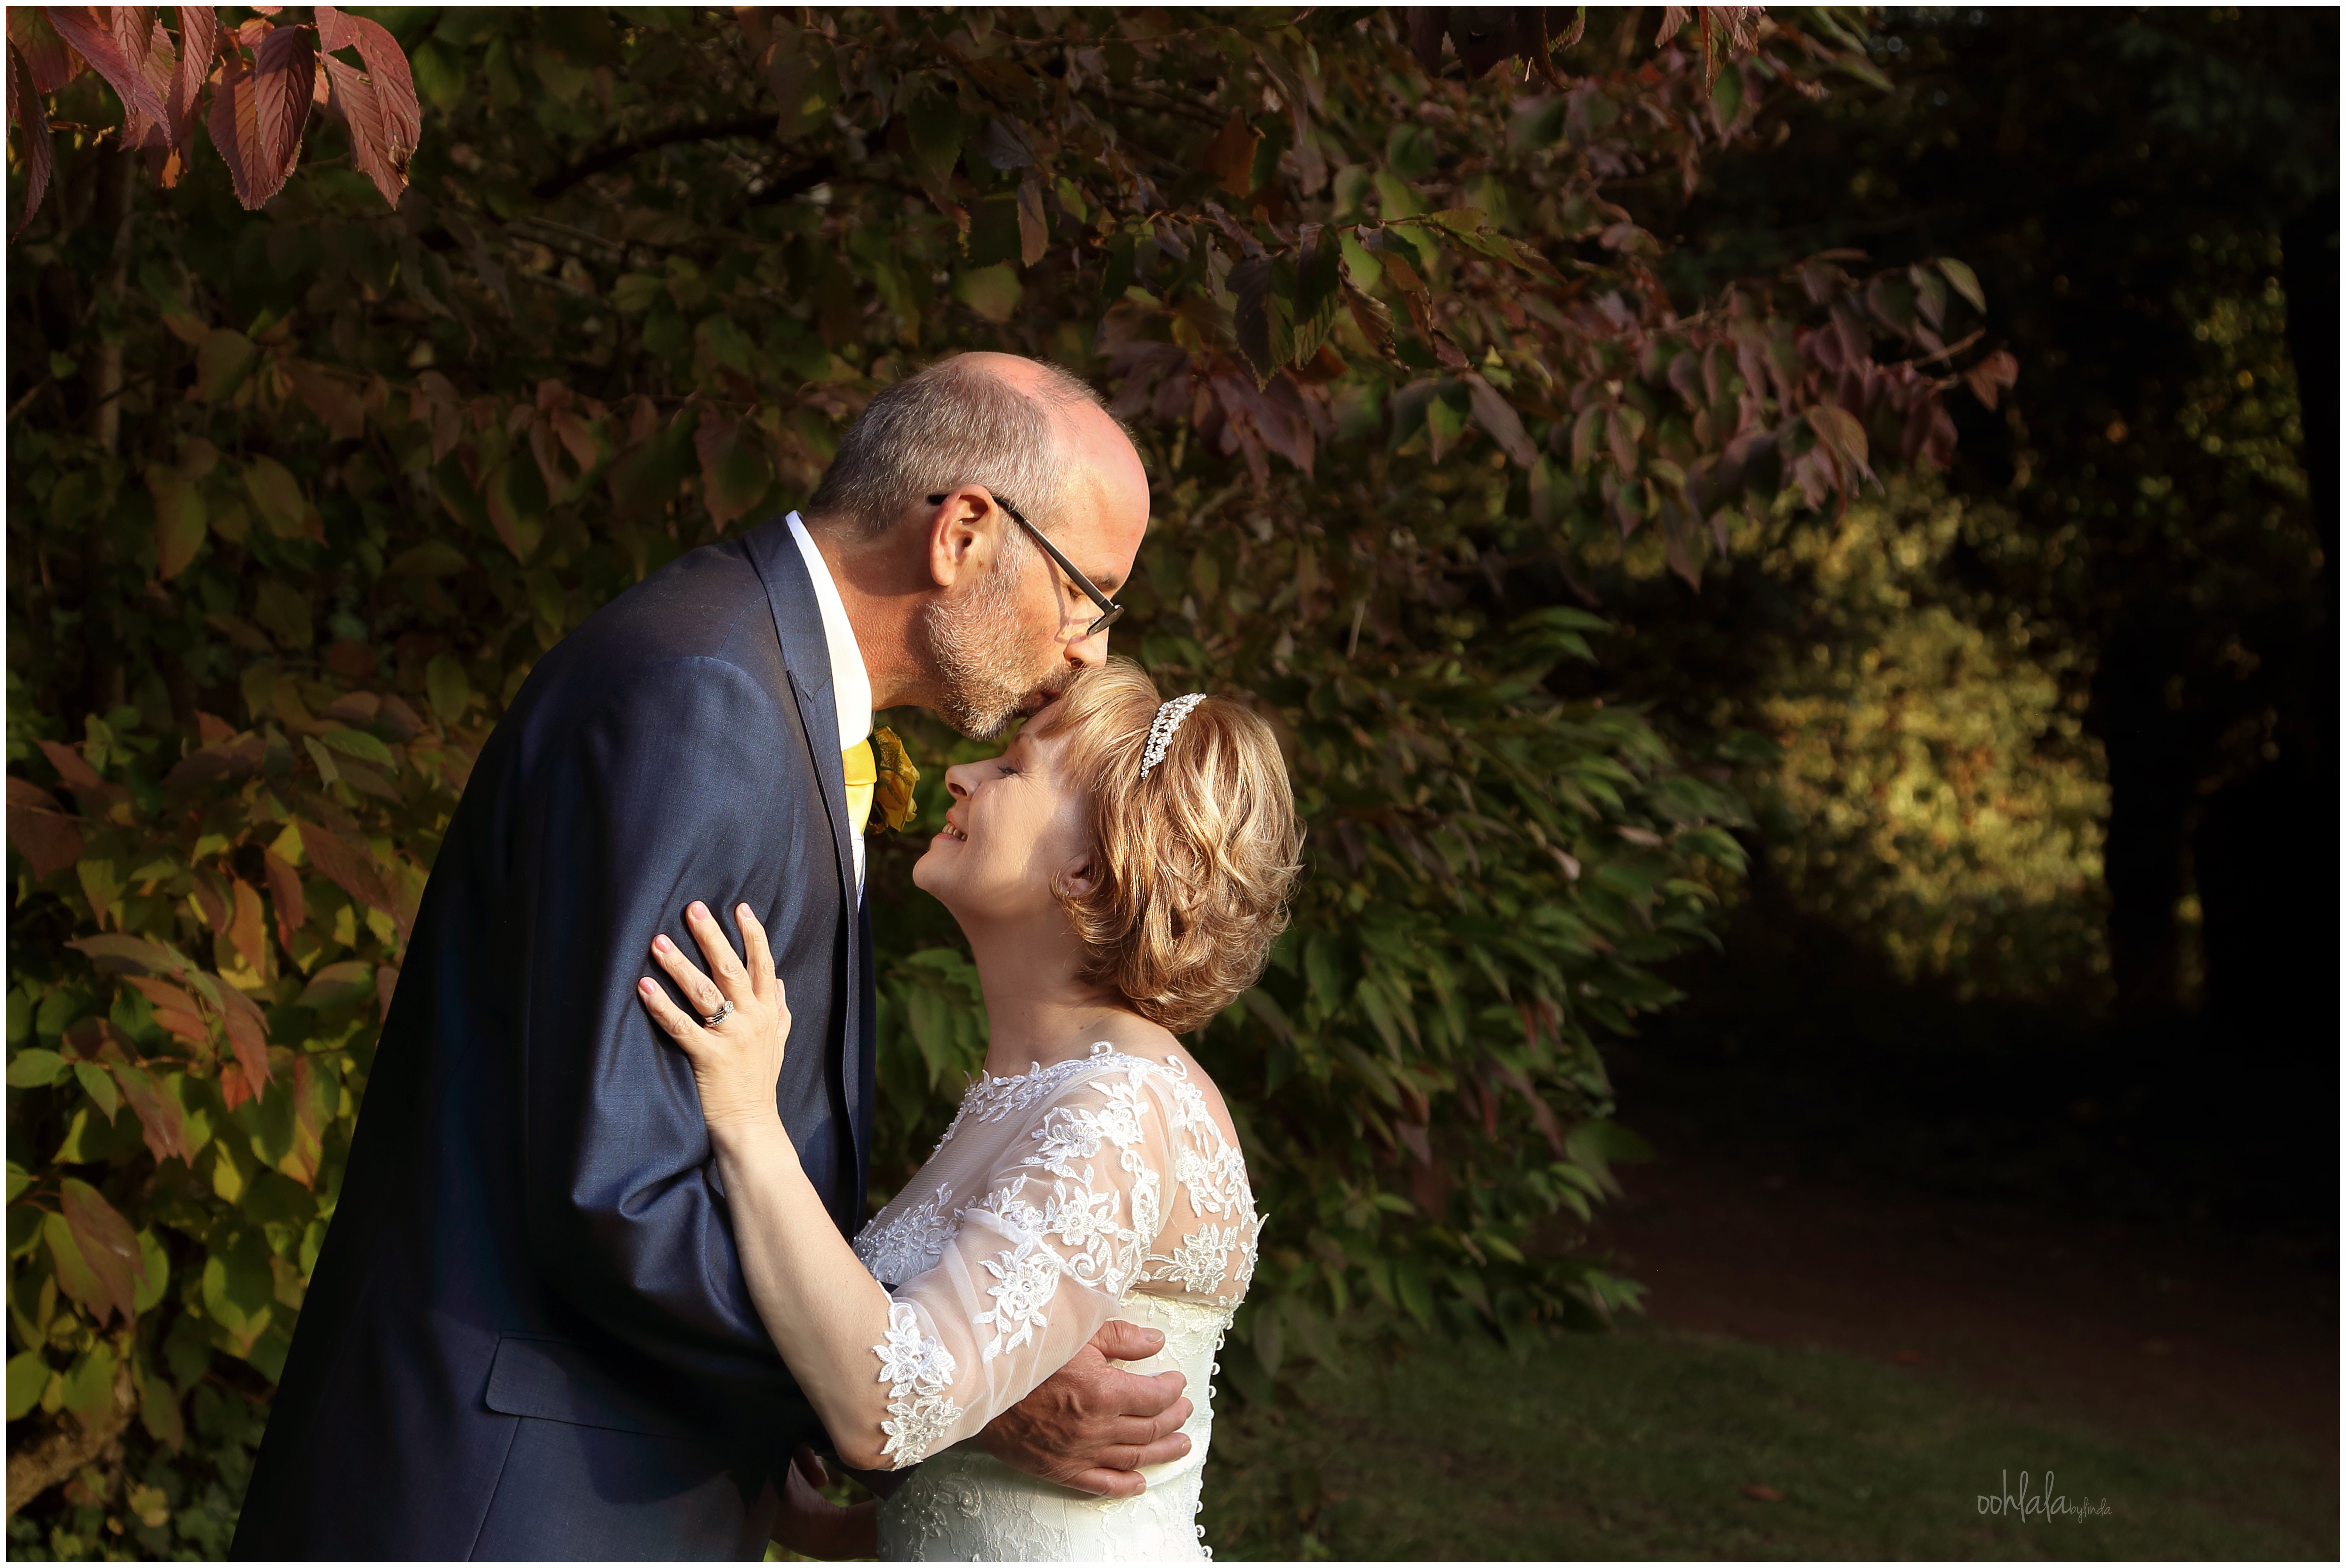 bridegroom kissing bride on top of her head in the gardens of wedding venue Caer Llan for a romantic photograph